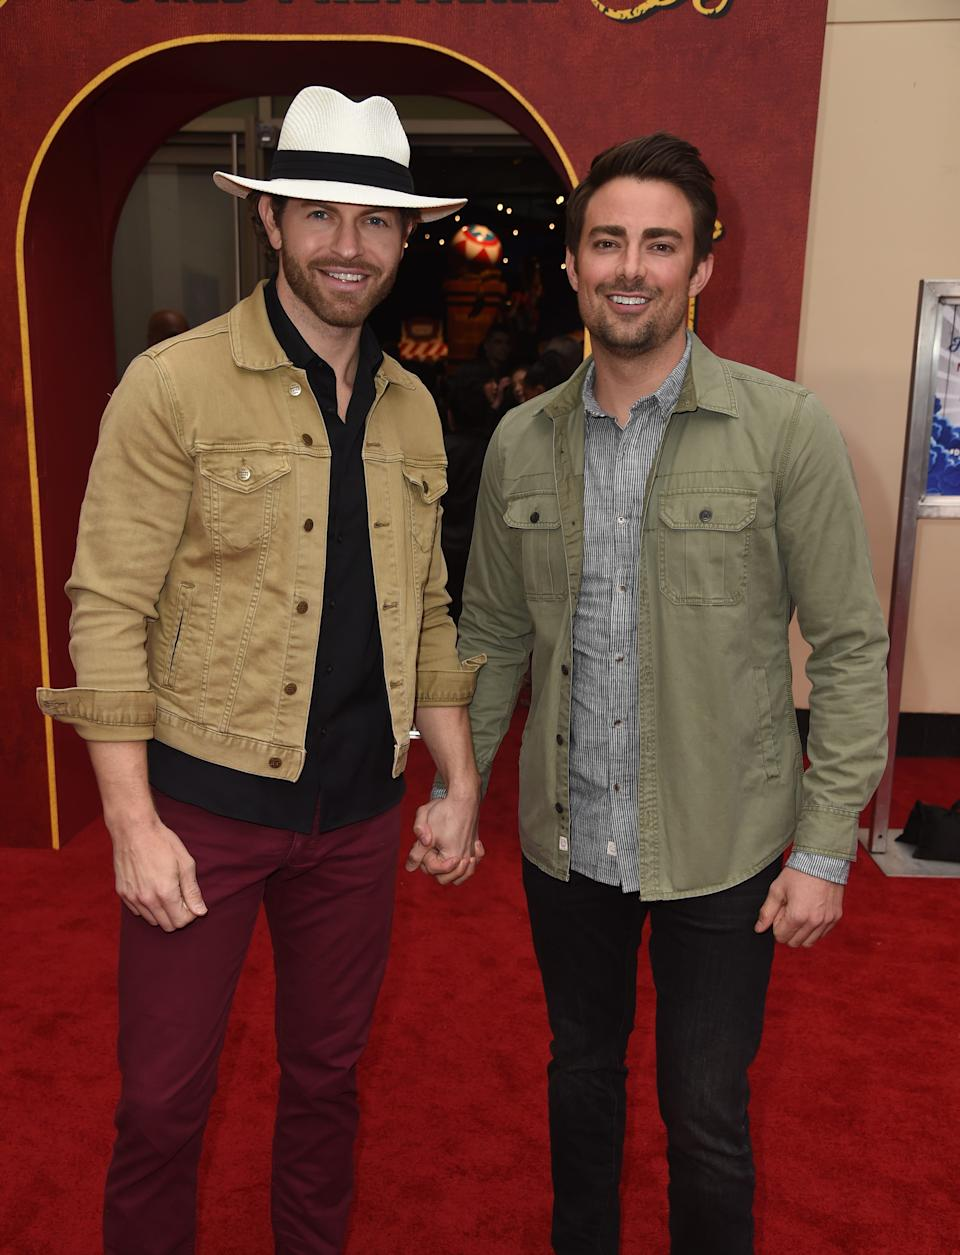 """Jonathan Bennett and his love, former """"Amazing Race"""" contestant Jaymes Vaughan, at the premiere of """"Dumbo""""  on March 11, 2019 in Los Angeles."""